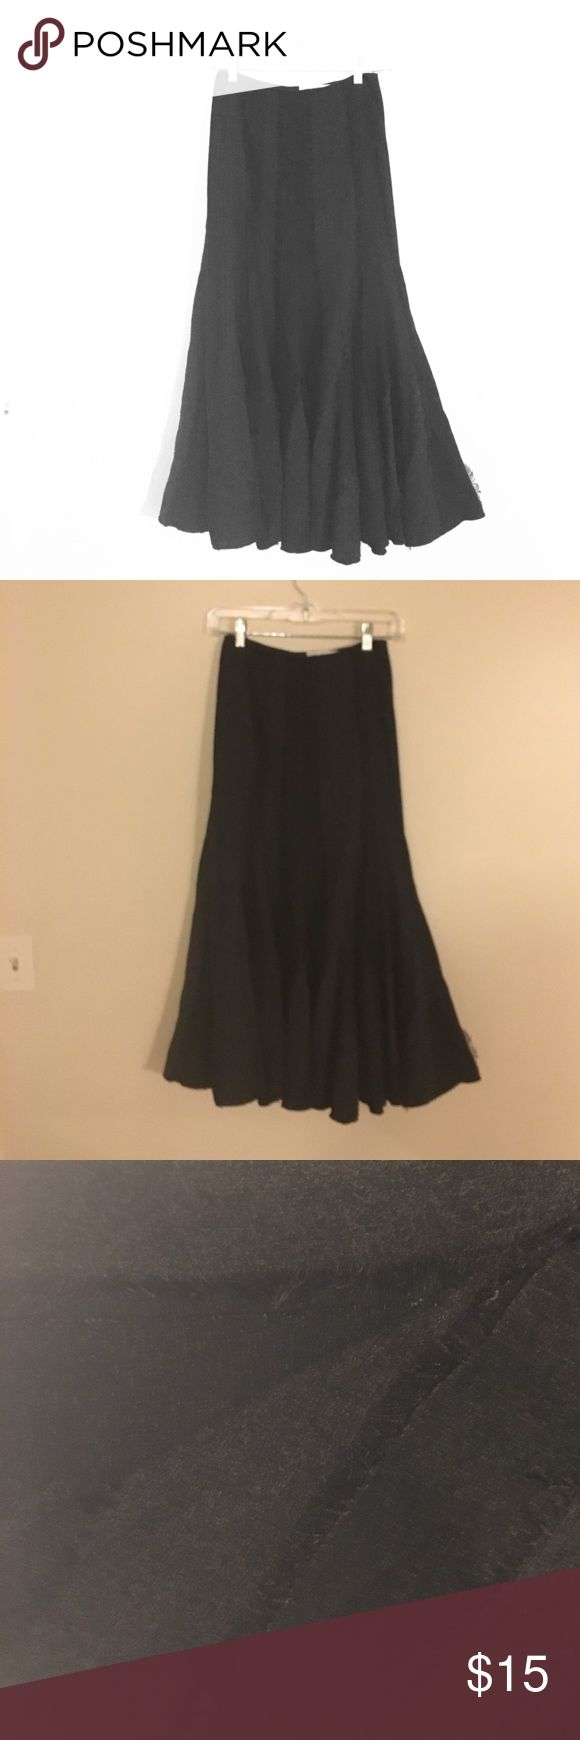 Lena Gabrielle Black Trumpet w Tweed Skirt 12 NICE Lena Gabrielle Black Tweed Trumpet Skirt. Size 12. Excellent condition - no stains, tears or rips. Hits around the ankle. Looks great w boots !! Priced at a killer deal ! Skirts A-Line or Full